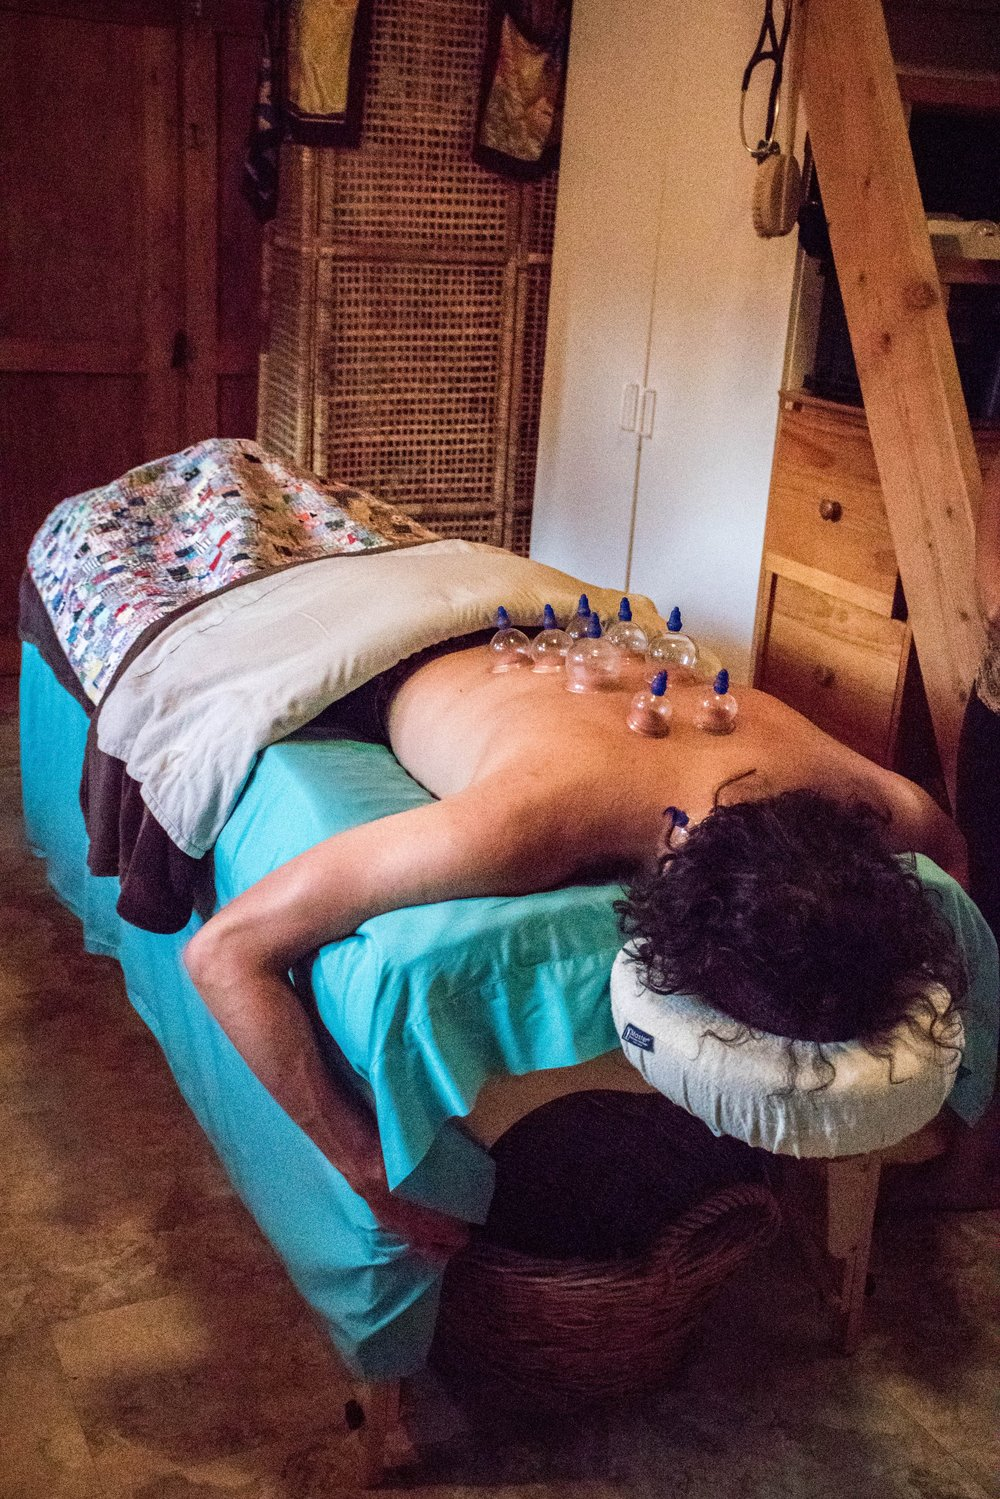 Cupping - Cupping therapy is an ancient form of alternative medicine in which a therapist puts special cups on your skin for a few minutes to create suction. People get it for many purposes, including to help with pain, inflammation, blood flow, relaxation and well-being, and as a type of deep-tissue massage (info from WebMD.)Patient receiving cupping for acute back pain in Dr. Alicia's Home Office. Photo Courtesy of Happy Beautiful Wealthy.